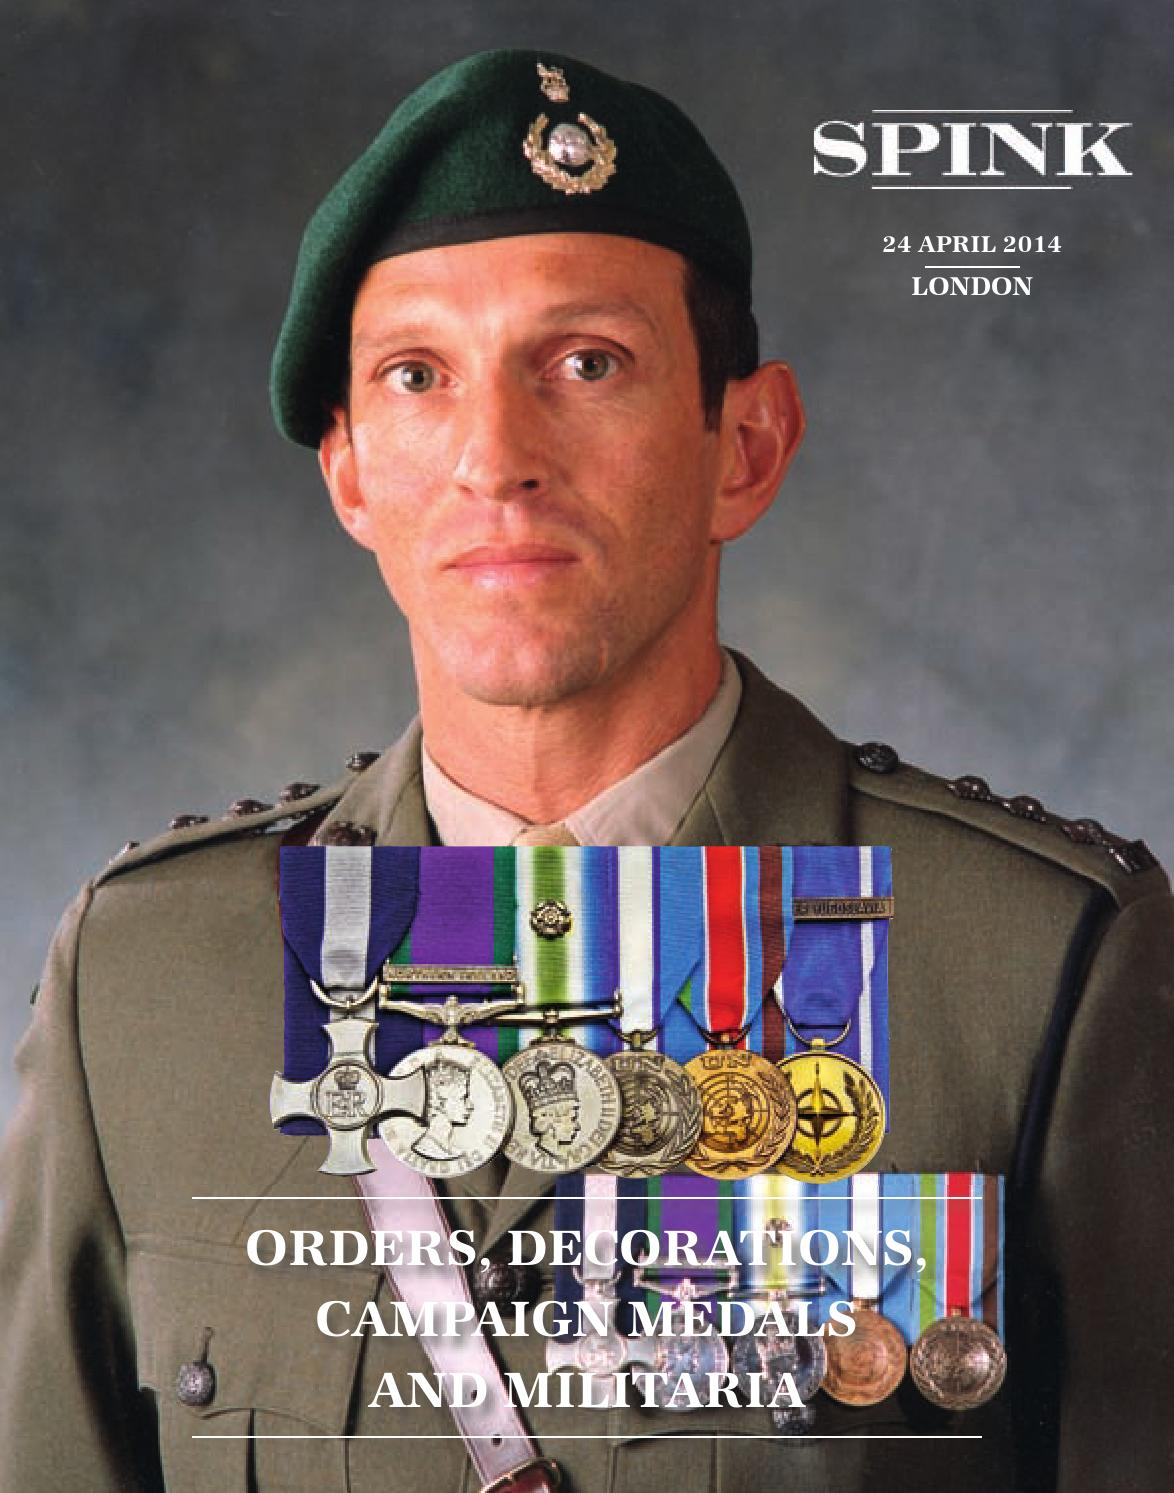 order medal decoration Orders, Decorations, Campaign Medals and Militaria by Spink and Son - issuu